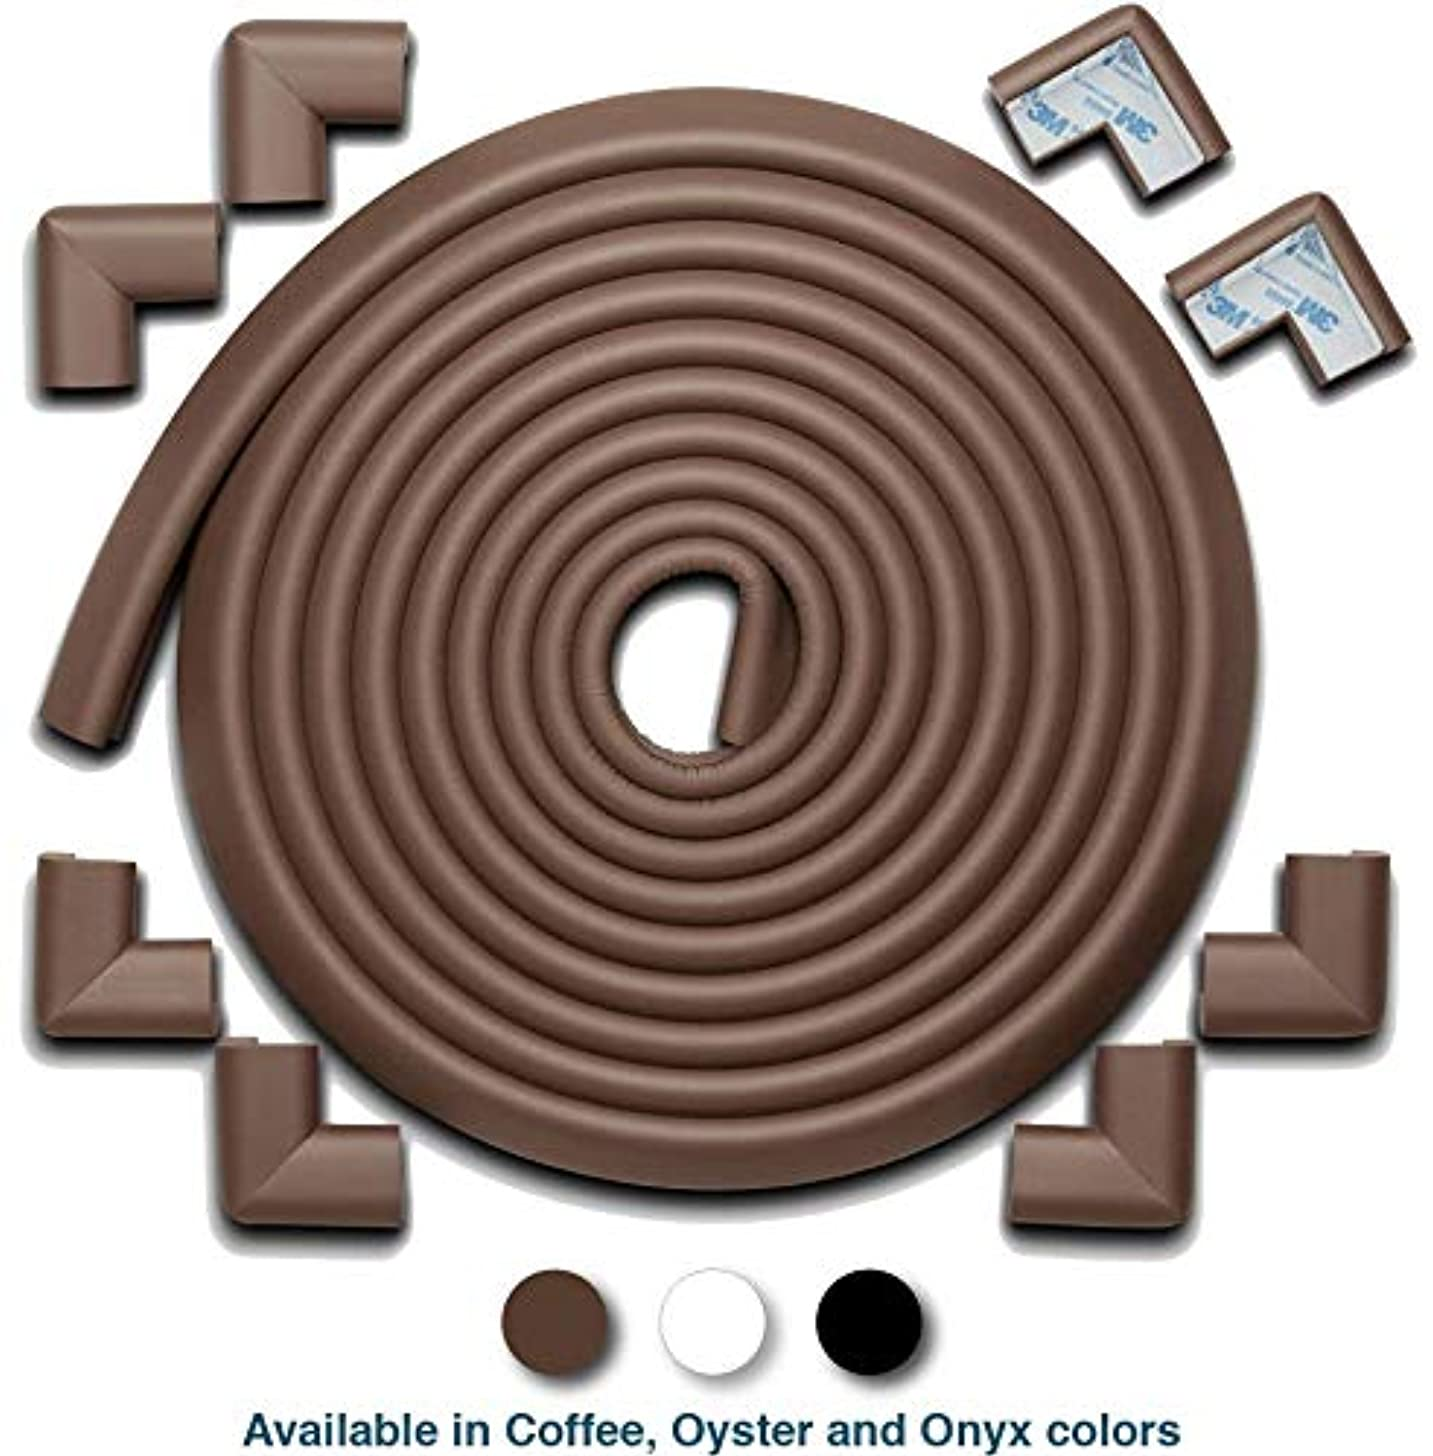 Roving Cove   Baby Proofing Edge & Corner Guards   Safe Edge & Corner Cushion   Child Safety Furniture Bumper   Table Protectors   Pre-Taped Corners   20.4 ft [18 ft Edge + 8 Corners]   Coffee Brown